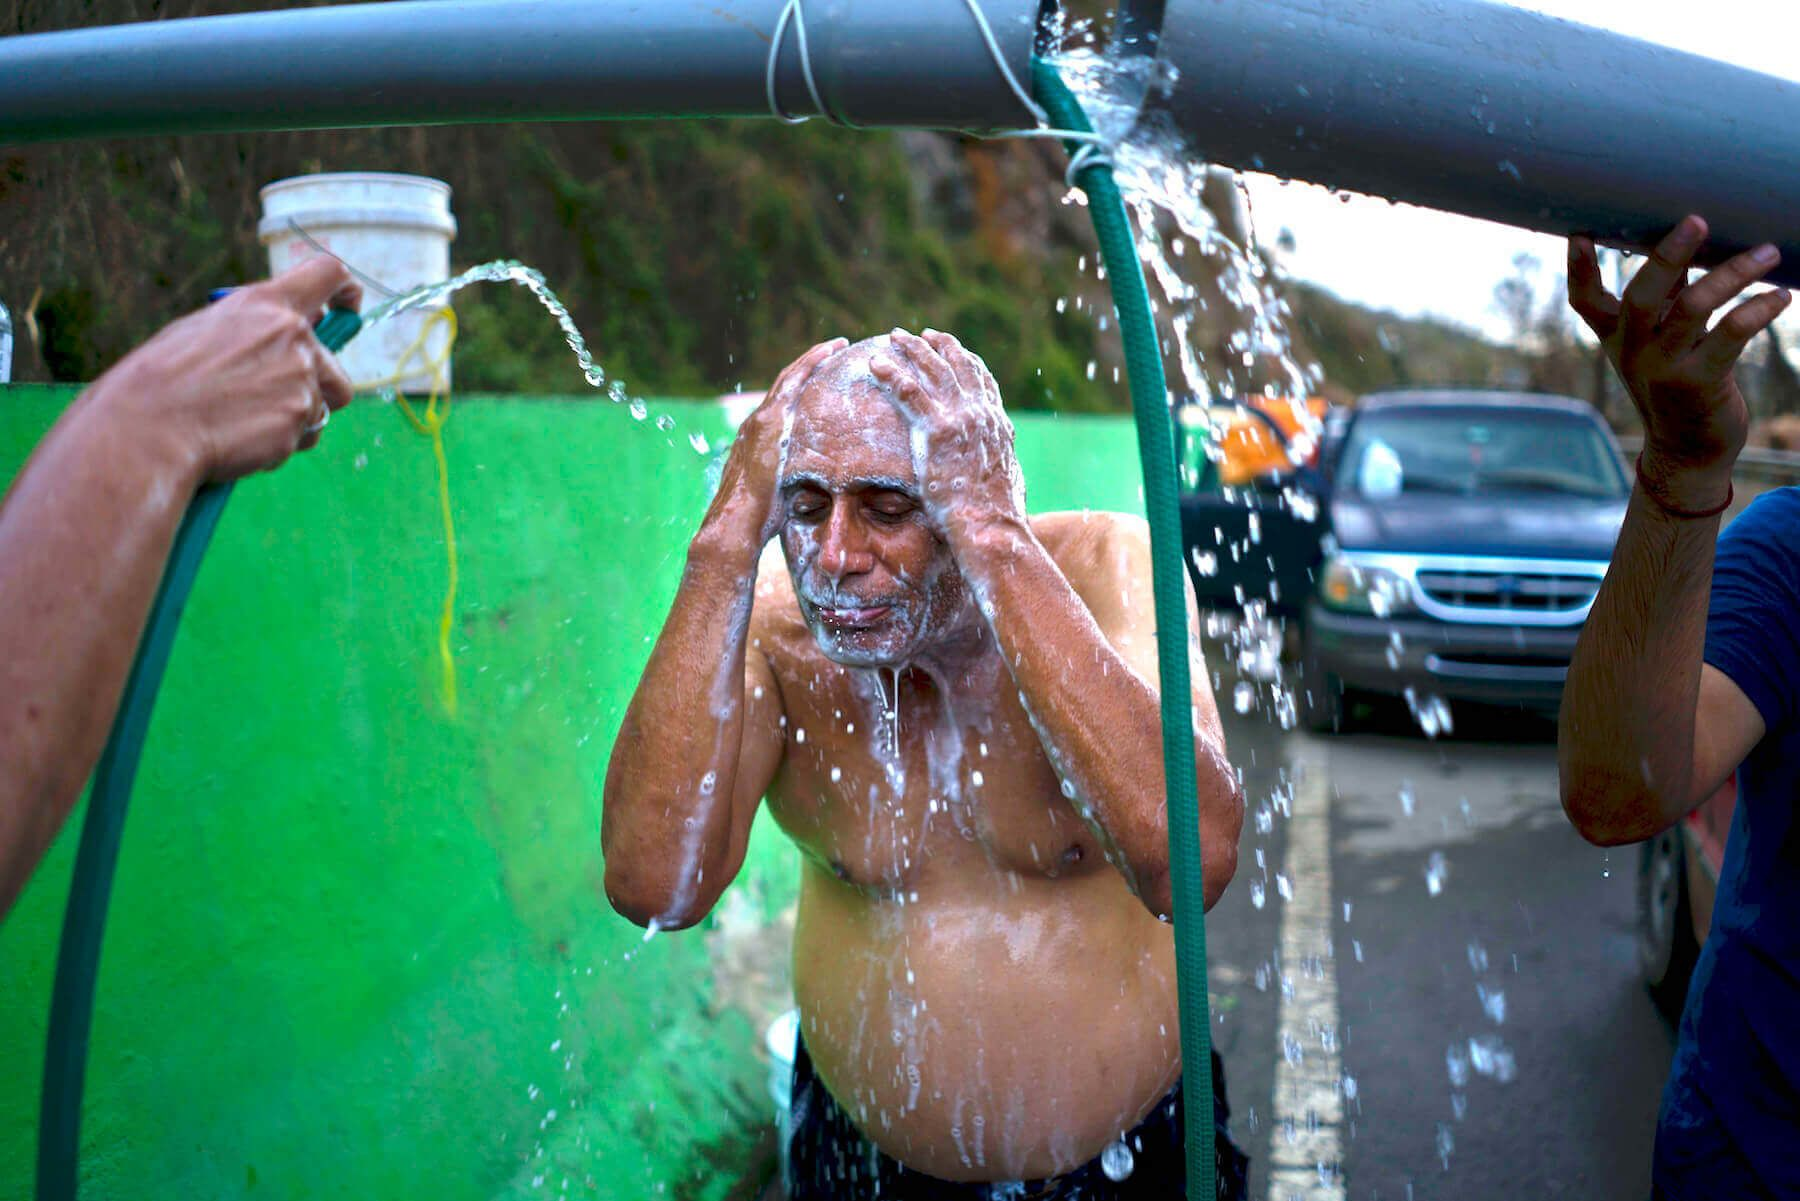 In October 2017, people in Naranjito had to bathe in water piped in by a neighbor from a local creek.